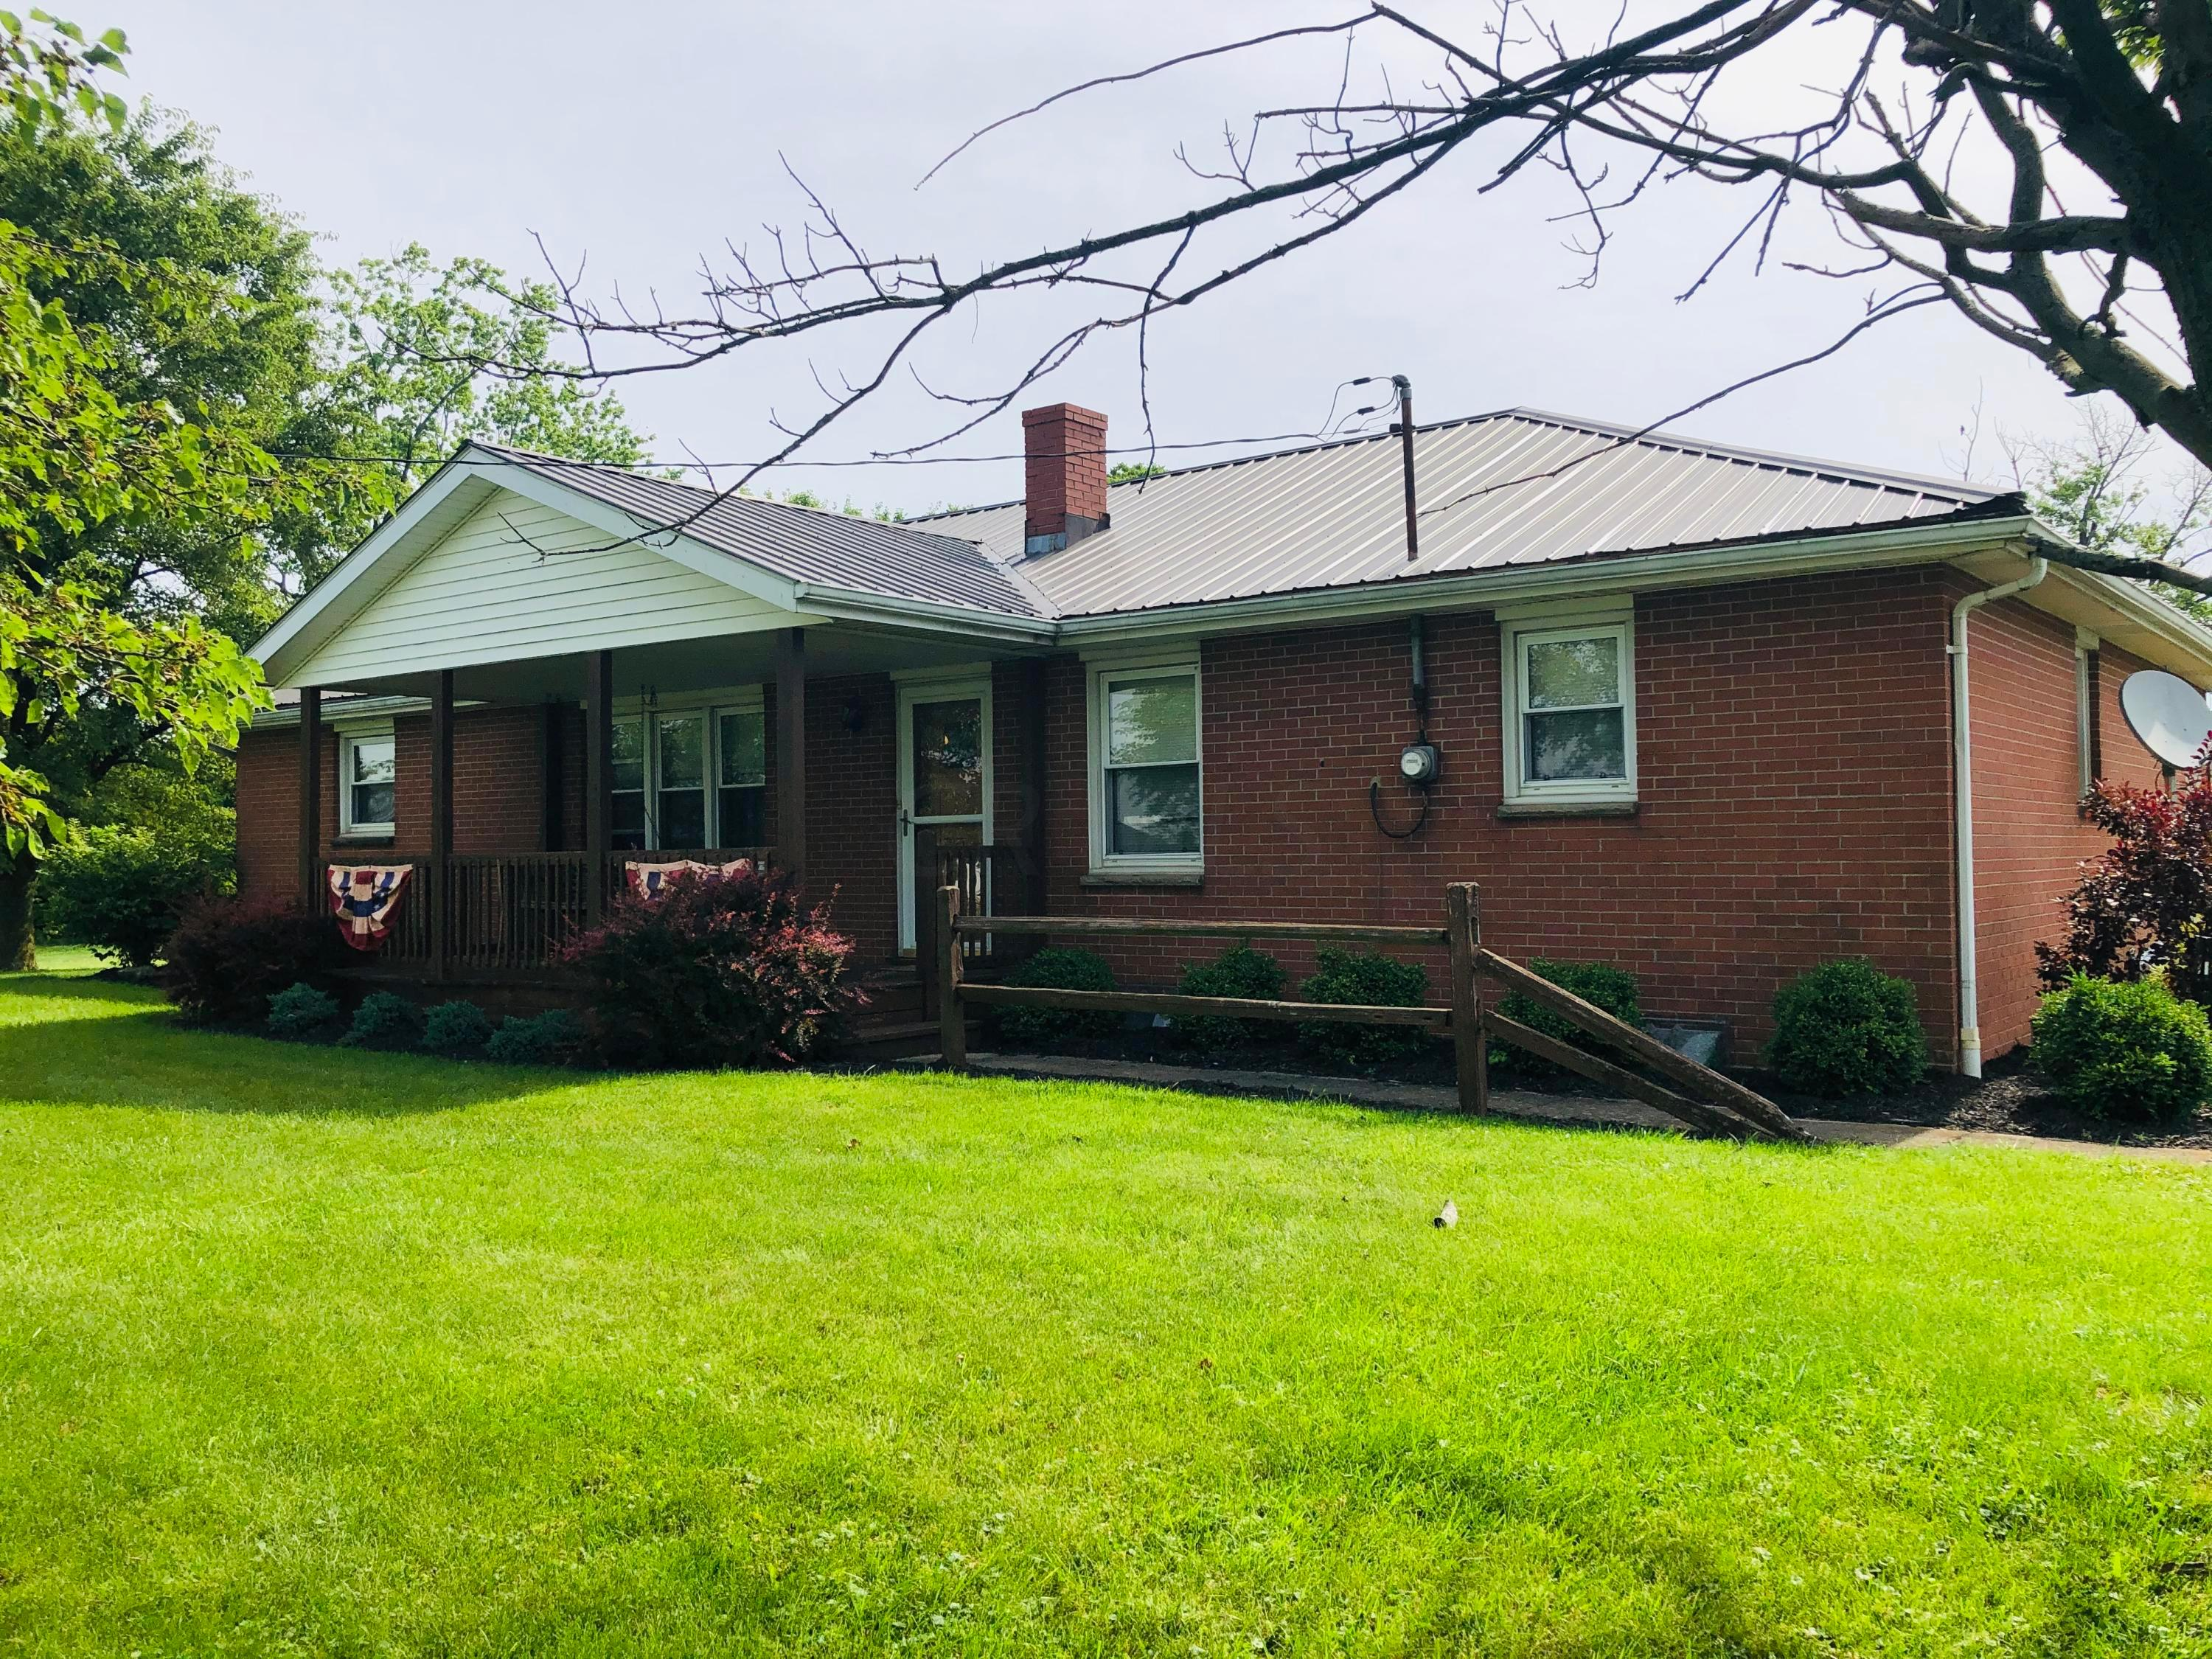 1995 Old Chillicothe Road, Washington Court House, Ohio 43160, 3 Bedrooms Bedrooms, ,2 BathroomsBathrooms,Residential,For Sale,Old Chillicothe,220020557